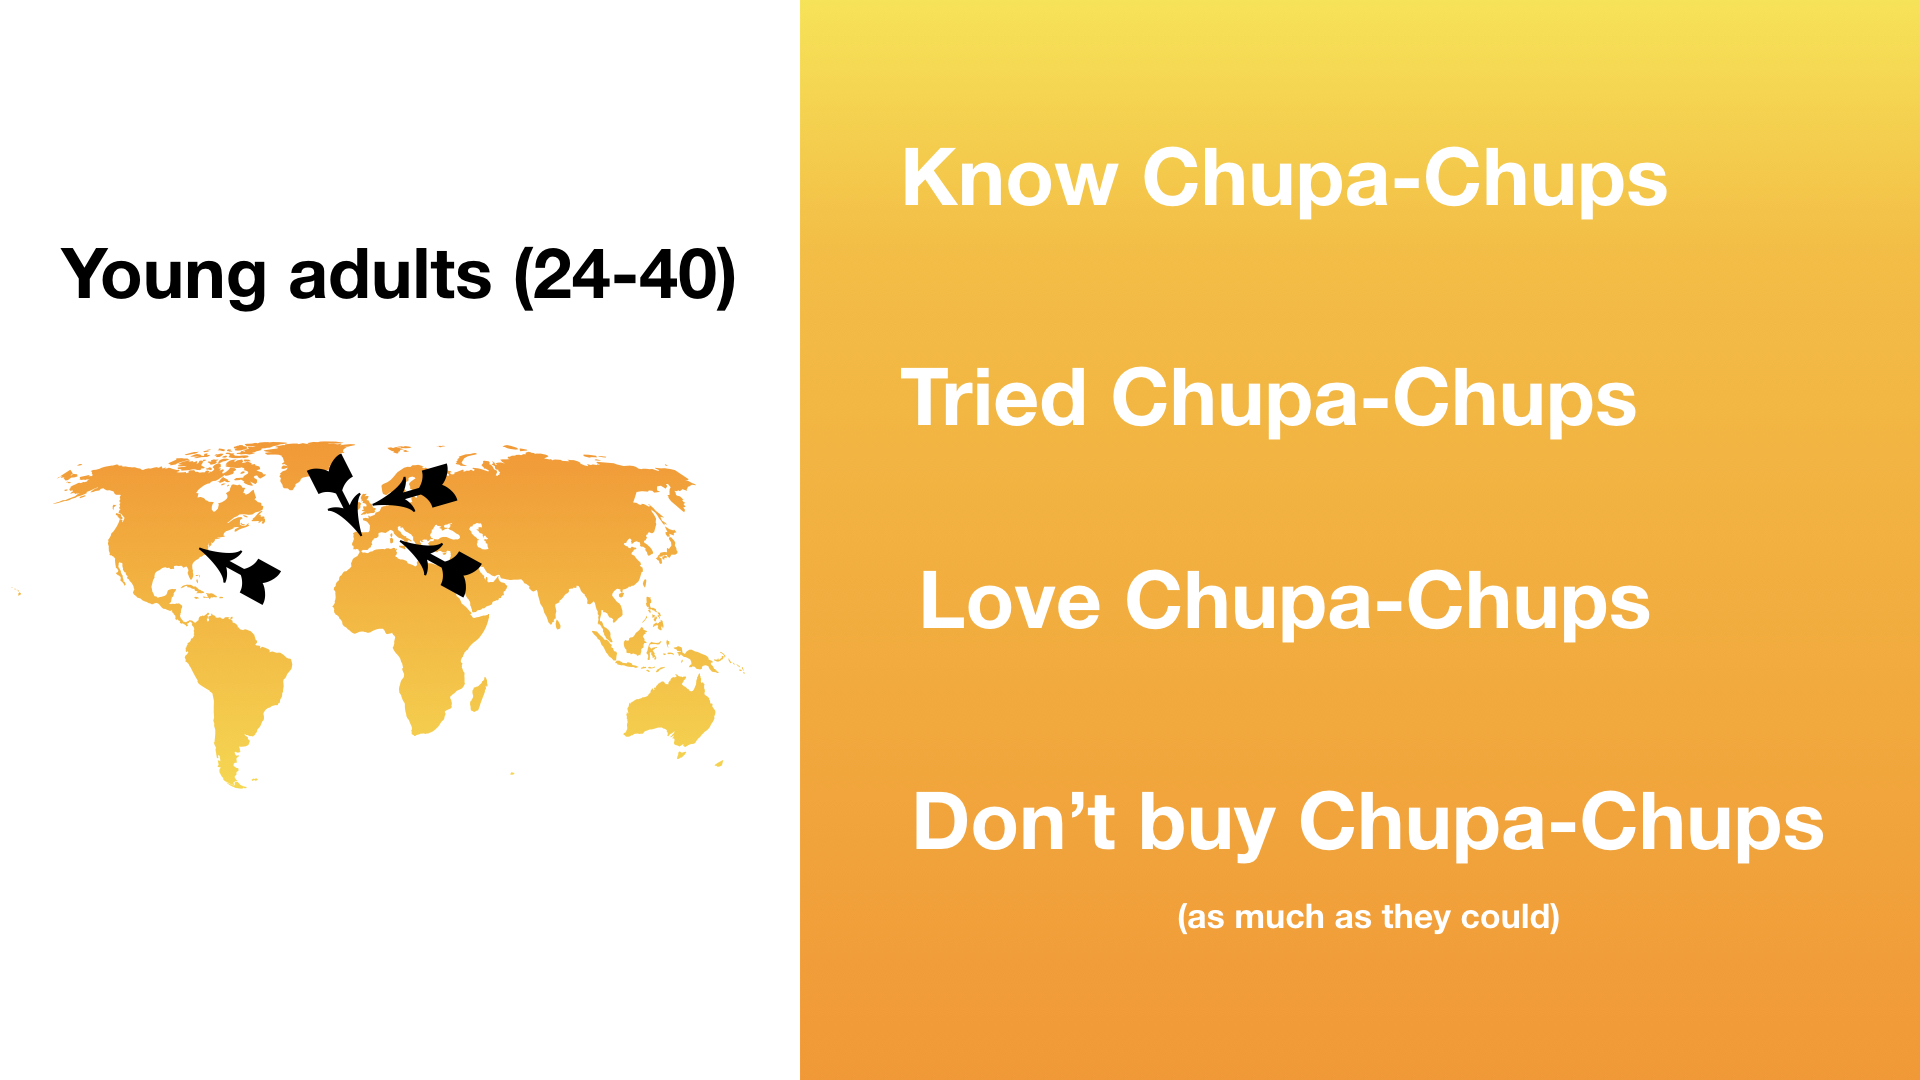 While the vast majority of the interviewed said they  love Chupa Chups as a brand, they also admitted they don't buy it anymore.